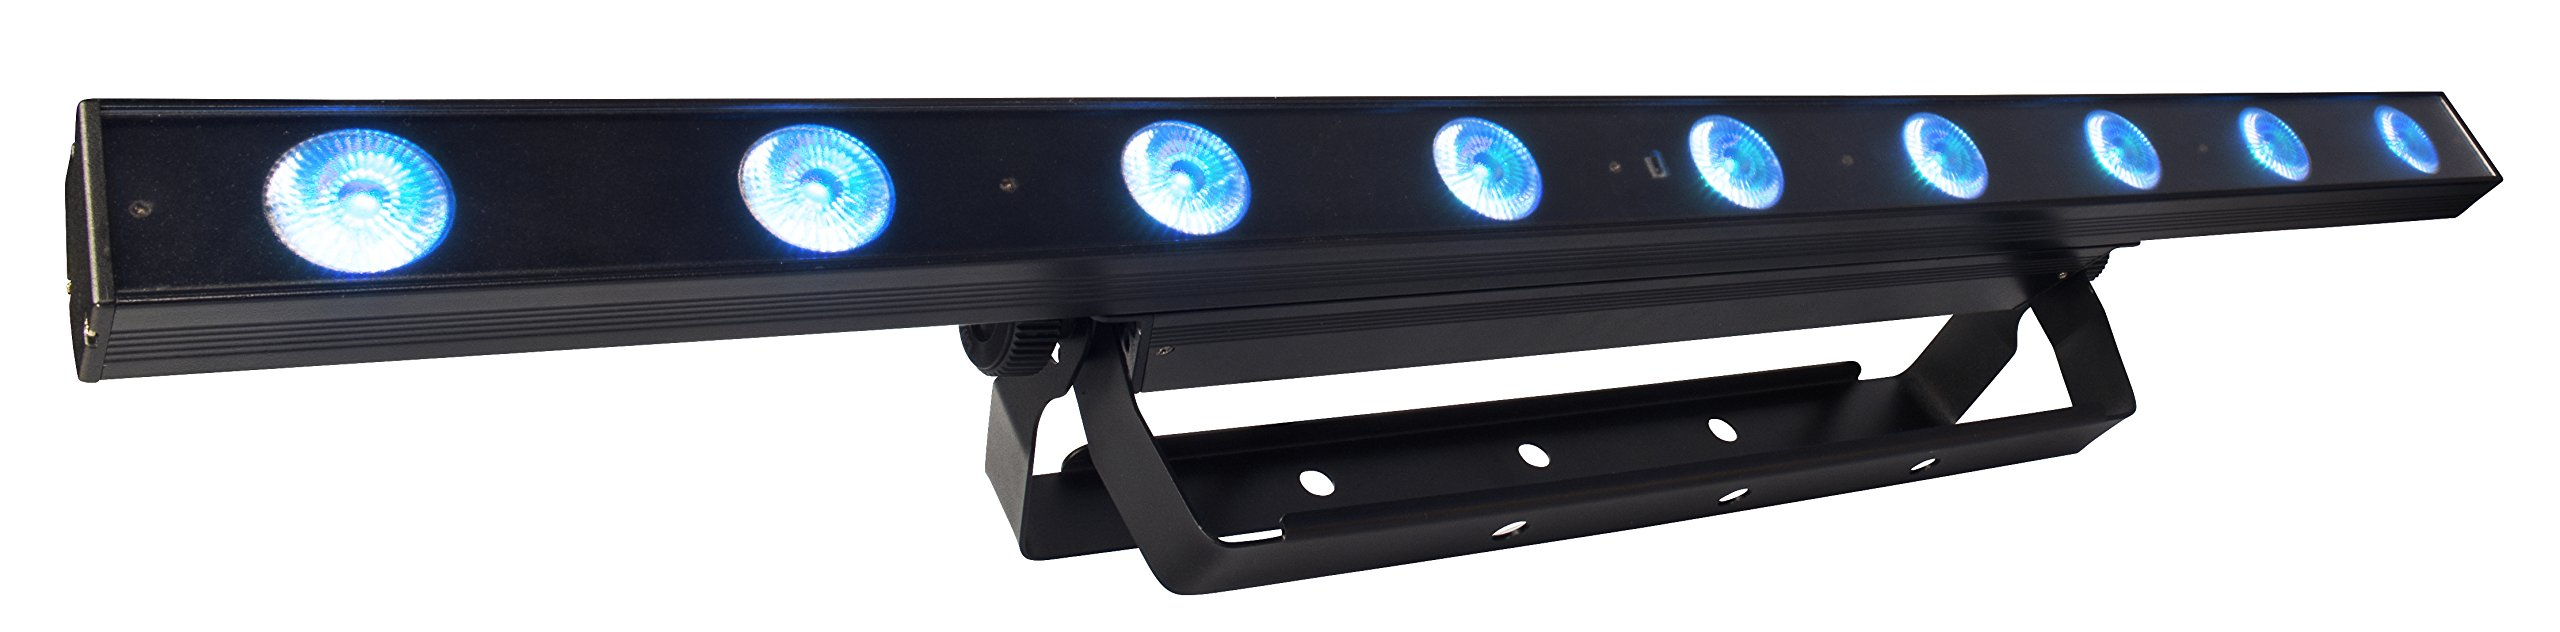 CHAUVET DJ COLORband H9 USB Hex-Color LED Linear Strip/Wash Light w/Chase Effect Lighting | LED Lighting